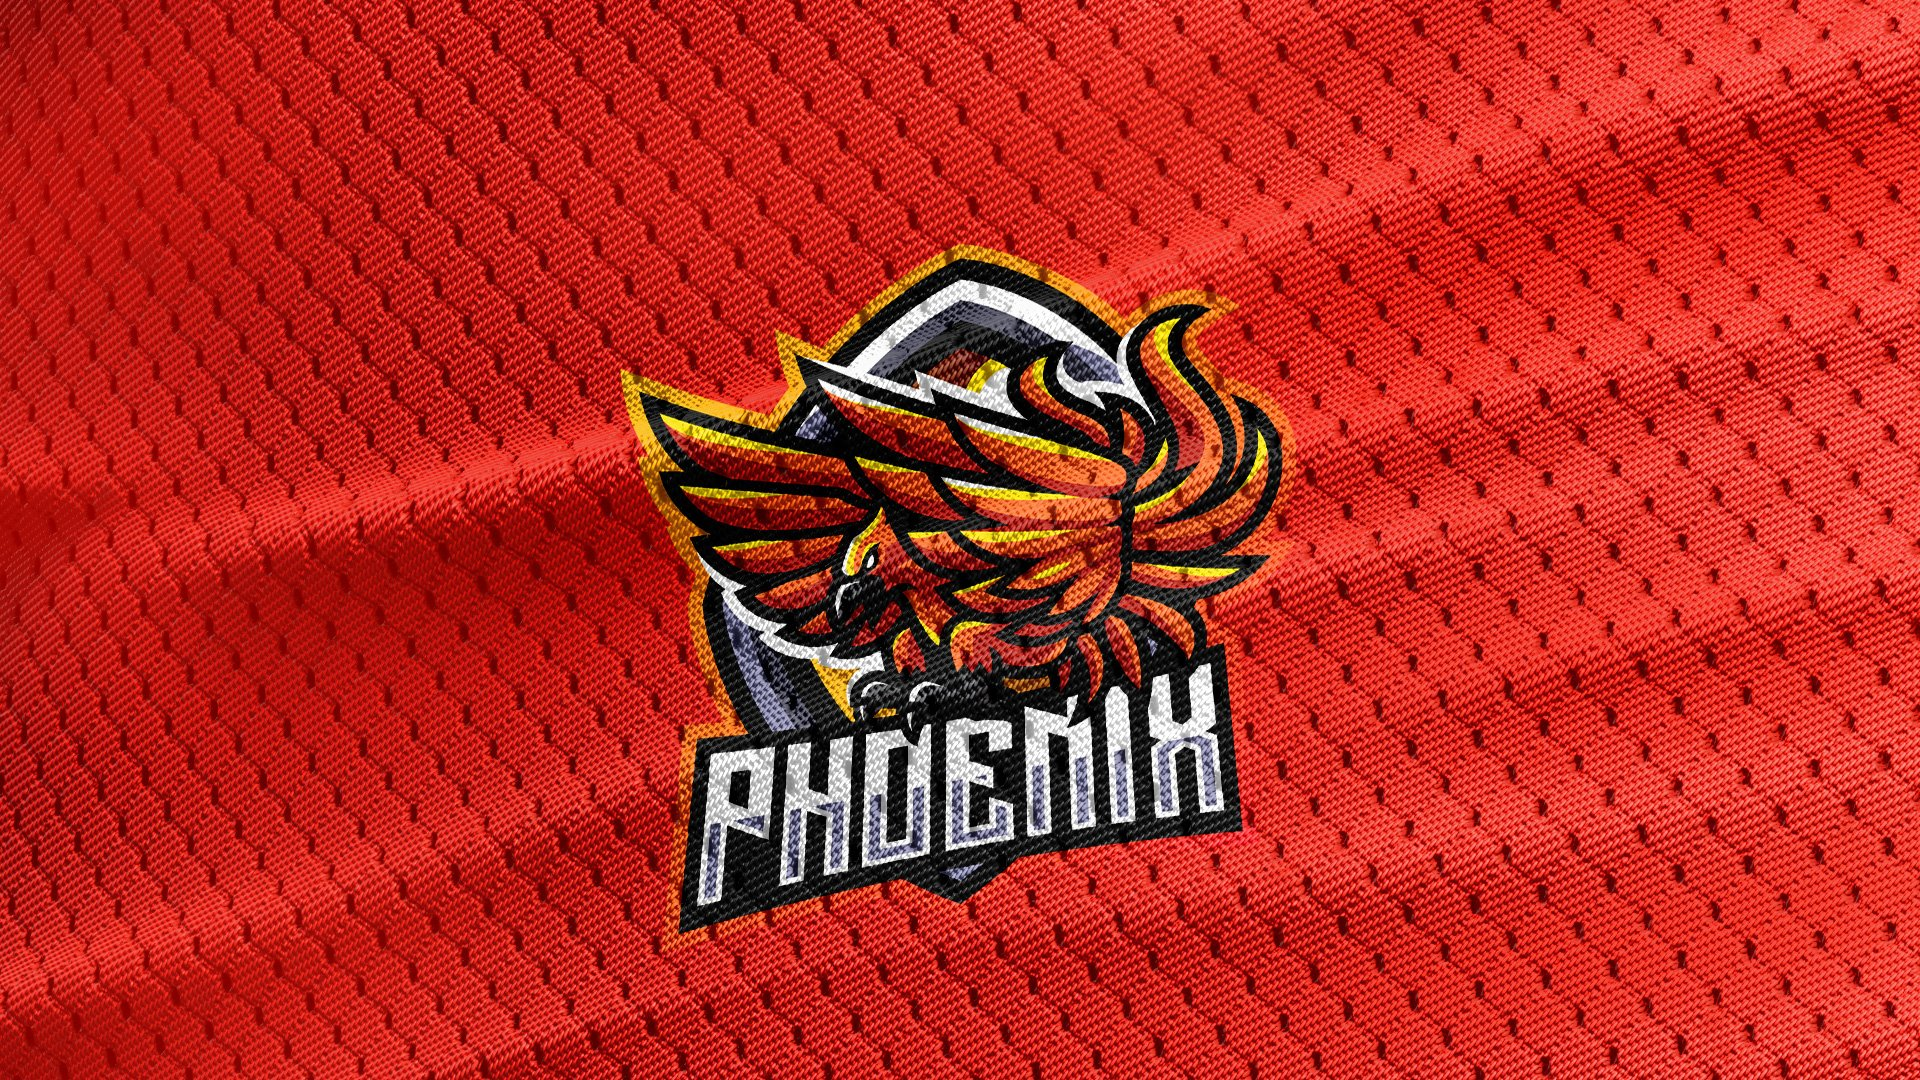 Red-Jersey-Texture-Free-Download-Phoenix-Mascot-Logo